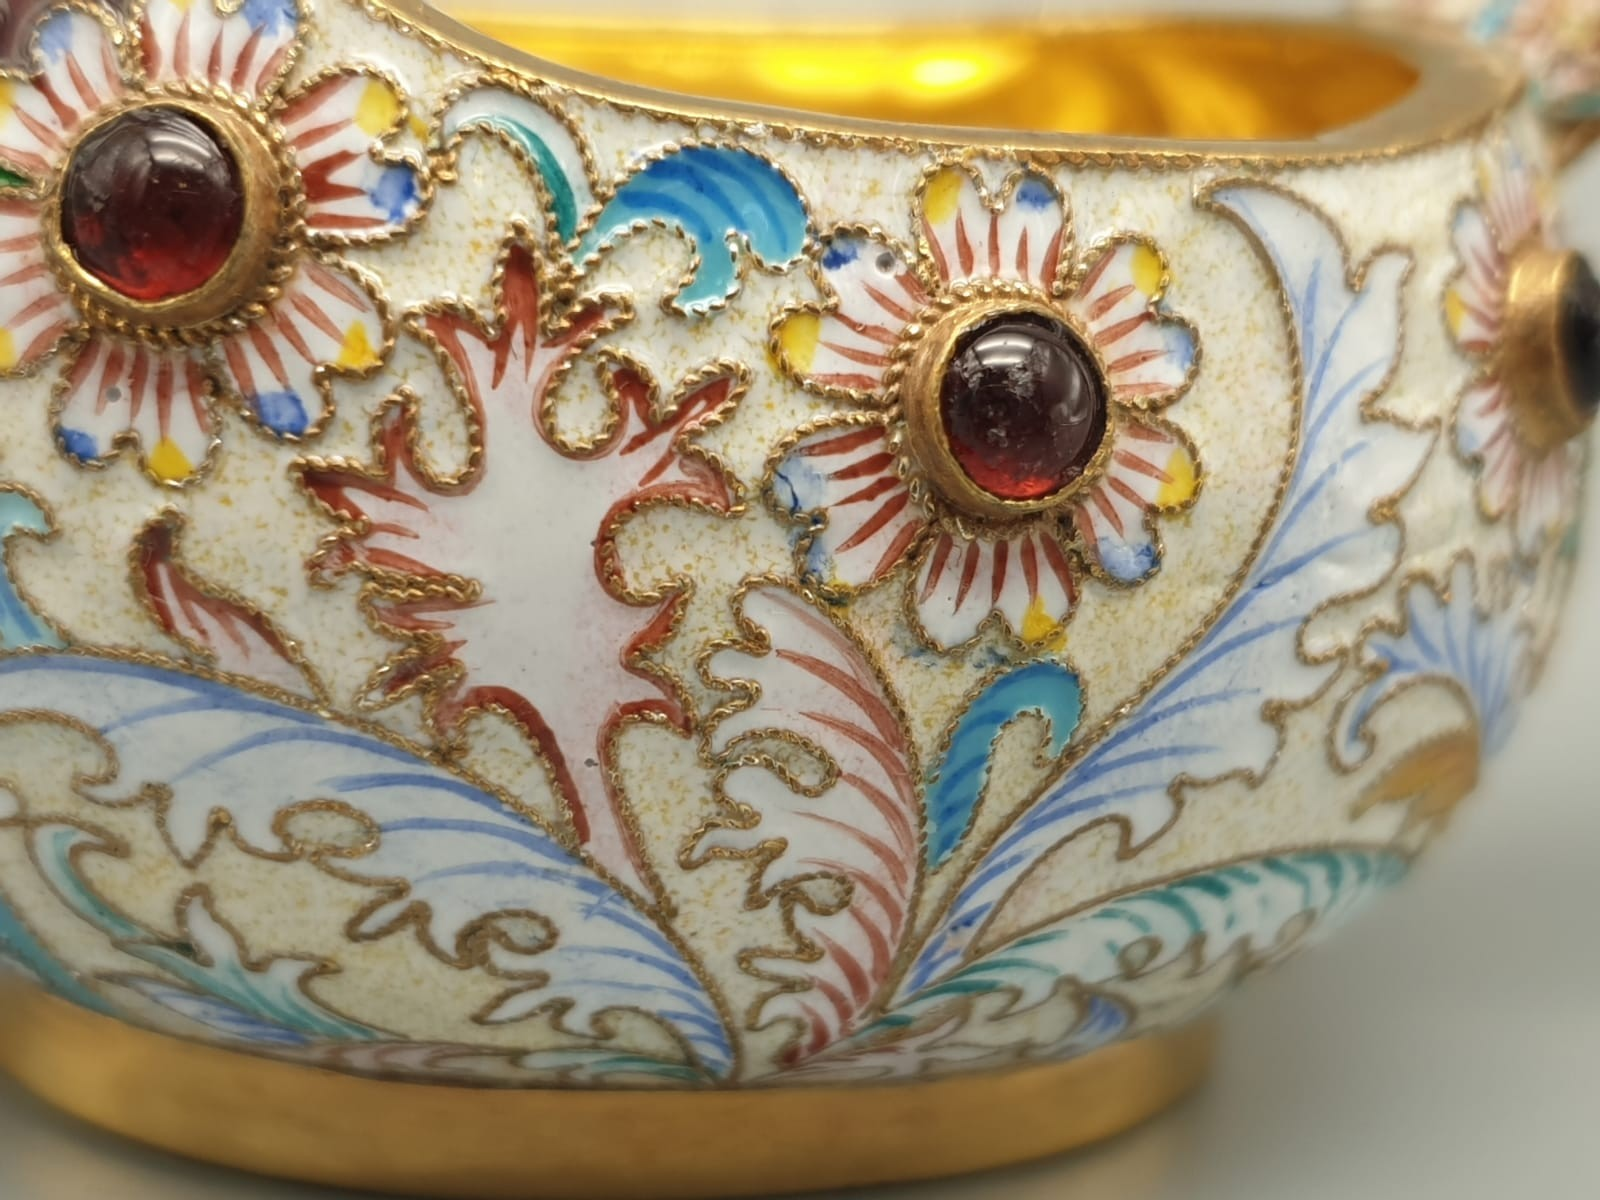 Pair of Russian 20th century silver enamel gemset kavosch bowl in the form of birds, an exquisite - Image 22 of 29